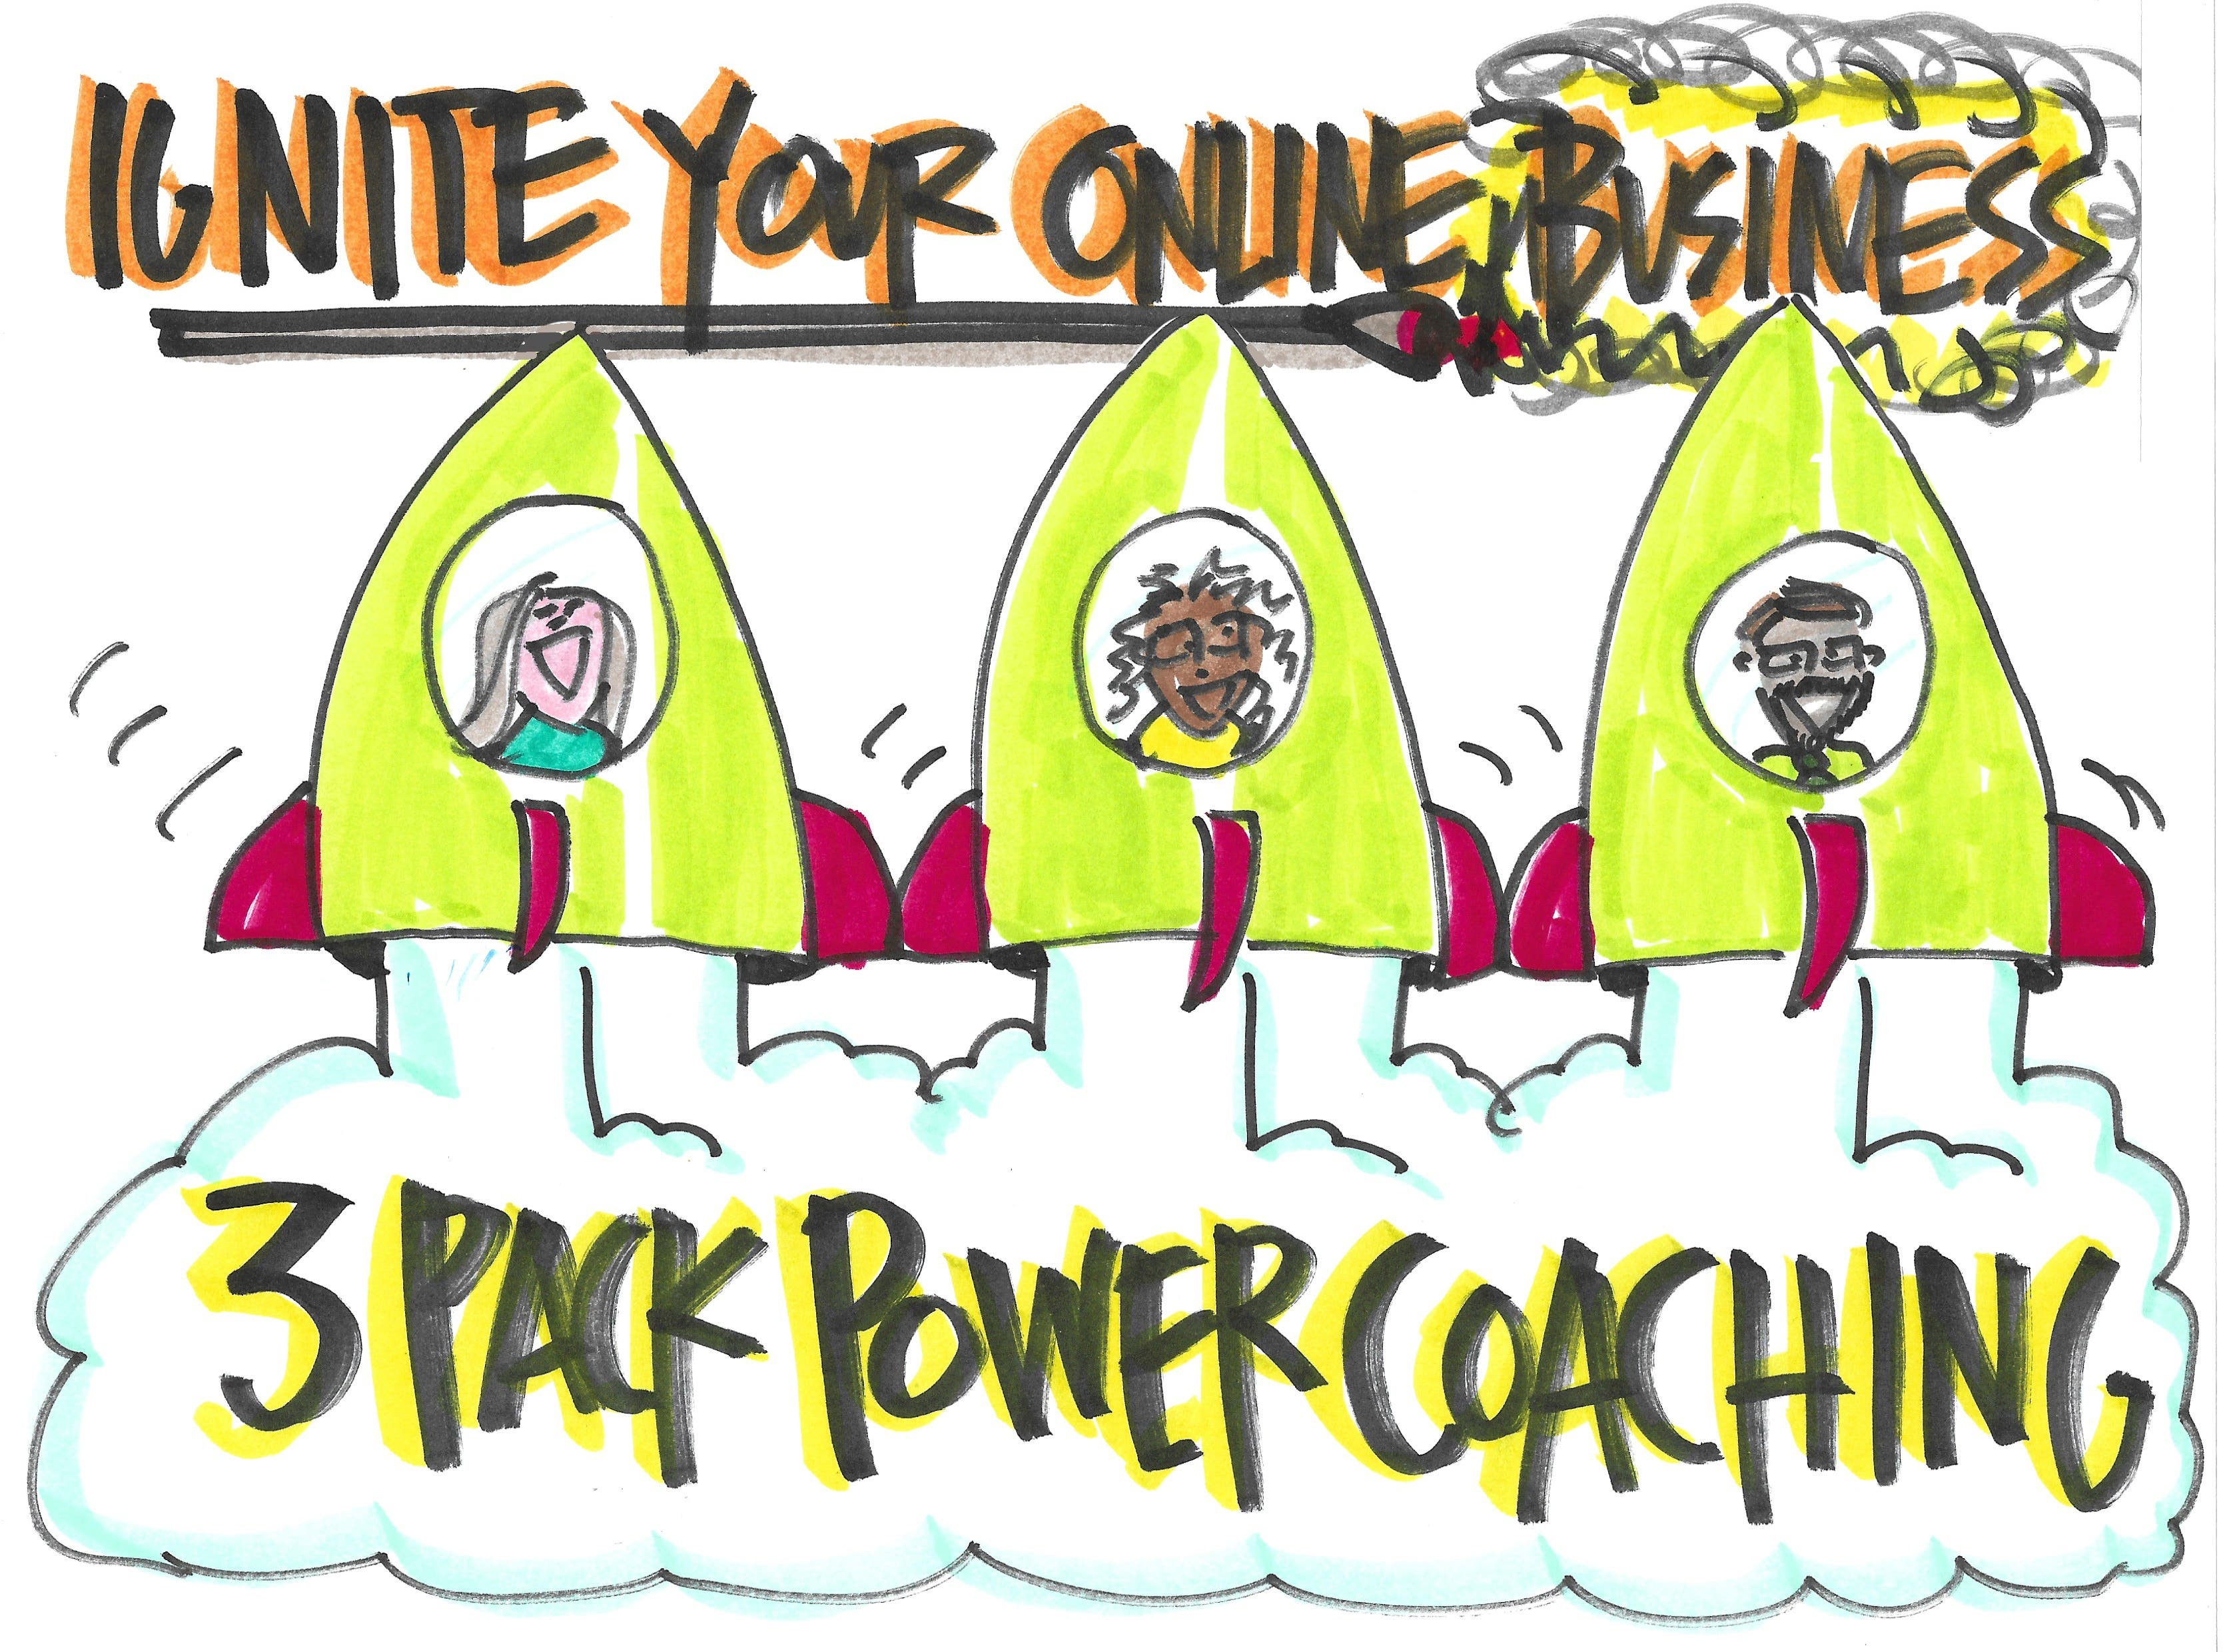 Ignite Your Online Business 3-Pack Power Coaching- Starting April 29th-9AM CST